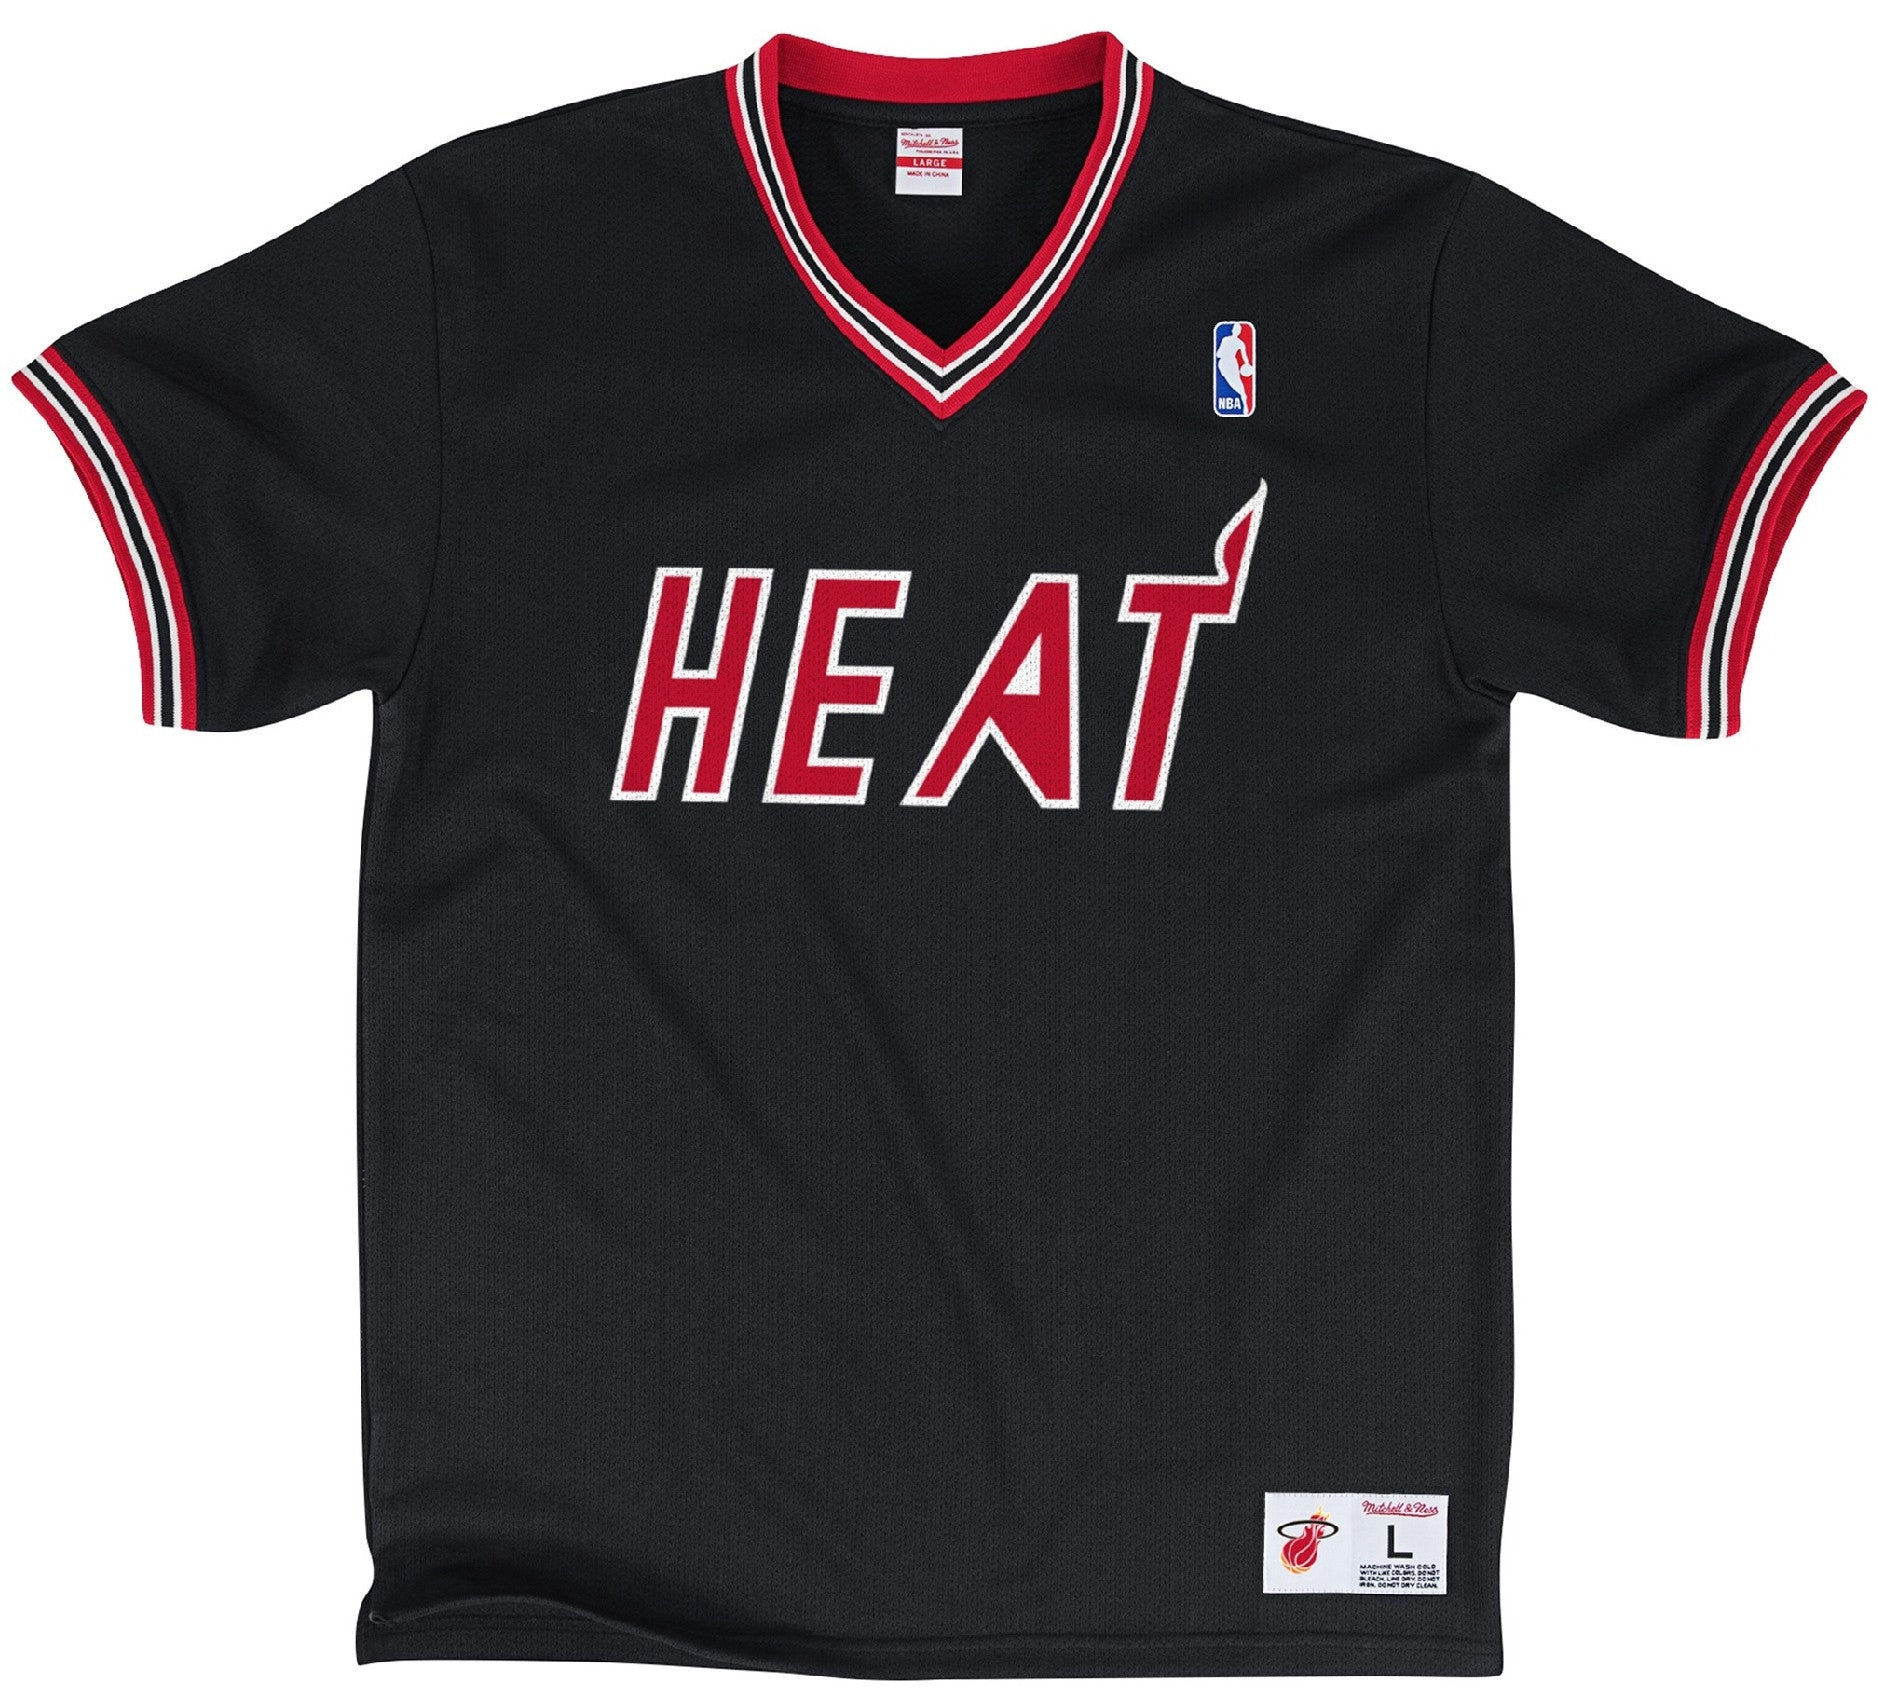 Heat Retro Mesh Jersey Shirt - And Still